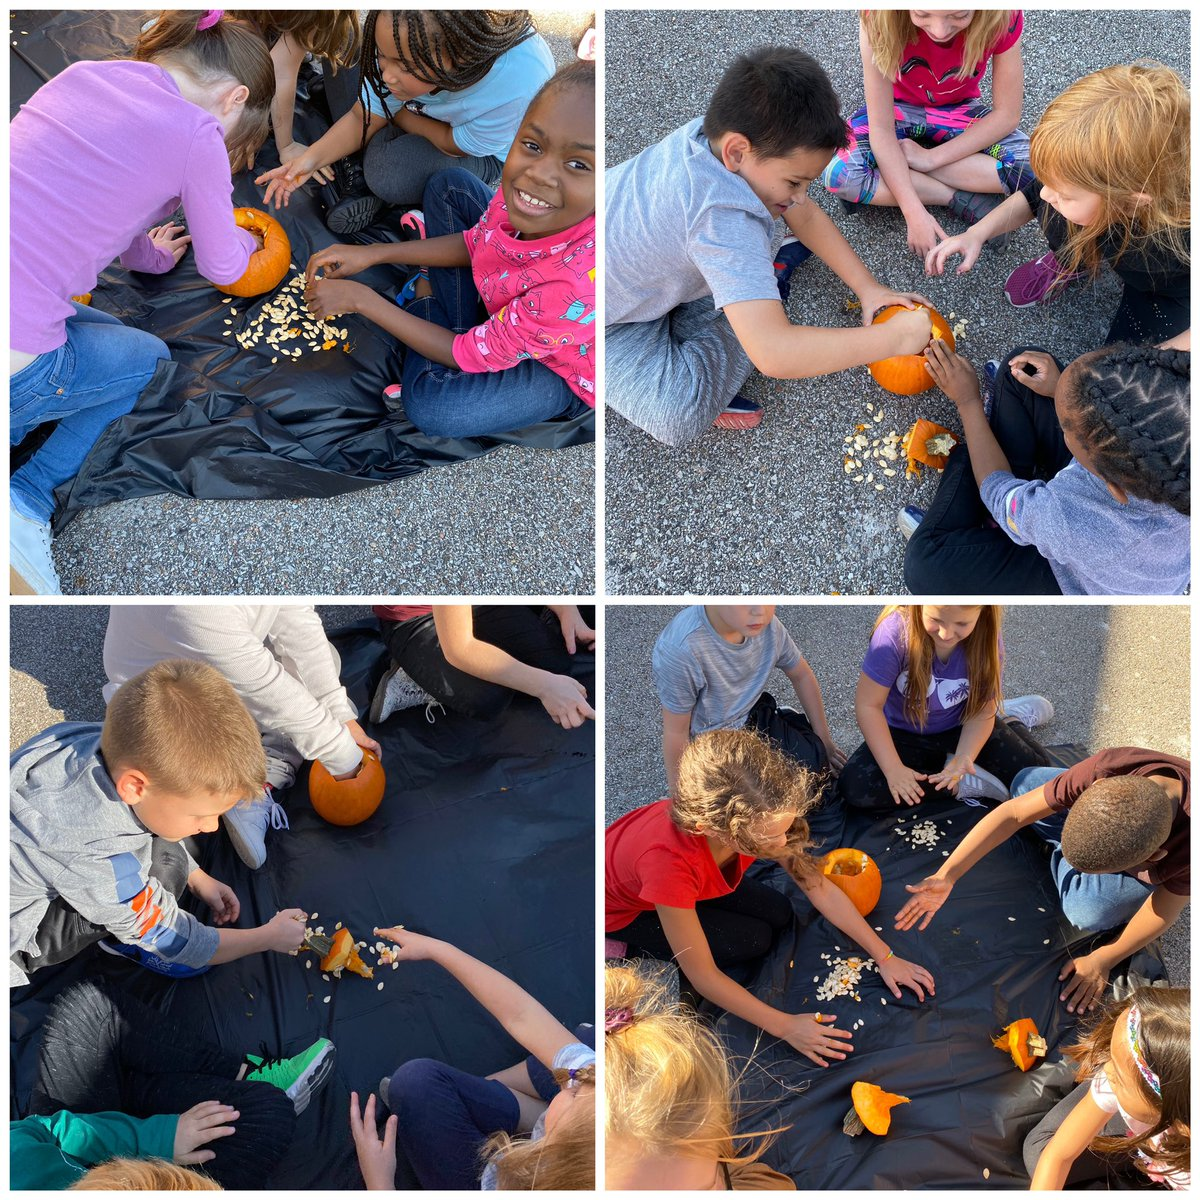 Pumpkins pumpkins pumpkins! My favorite week so far in science. We started off by carving our pumpkins and getting all the seeds out. Tomorrow we will be counting the seeds. #sciencerocks #sharks4life @LBSharks<br>http://pic.twitter.com/7IJT8RapUa